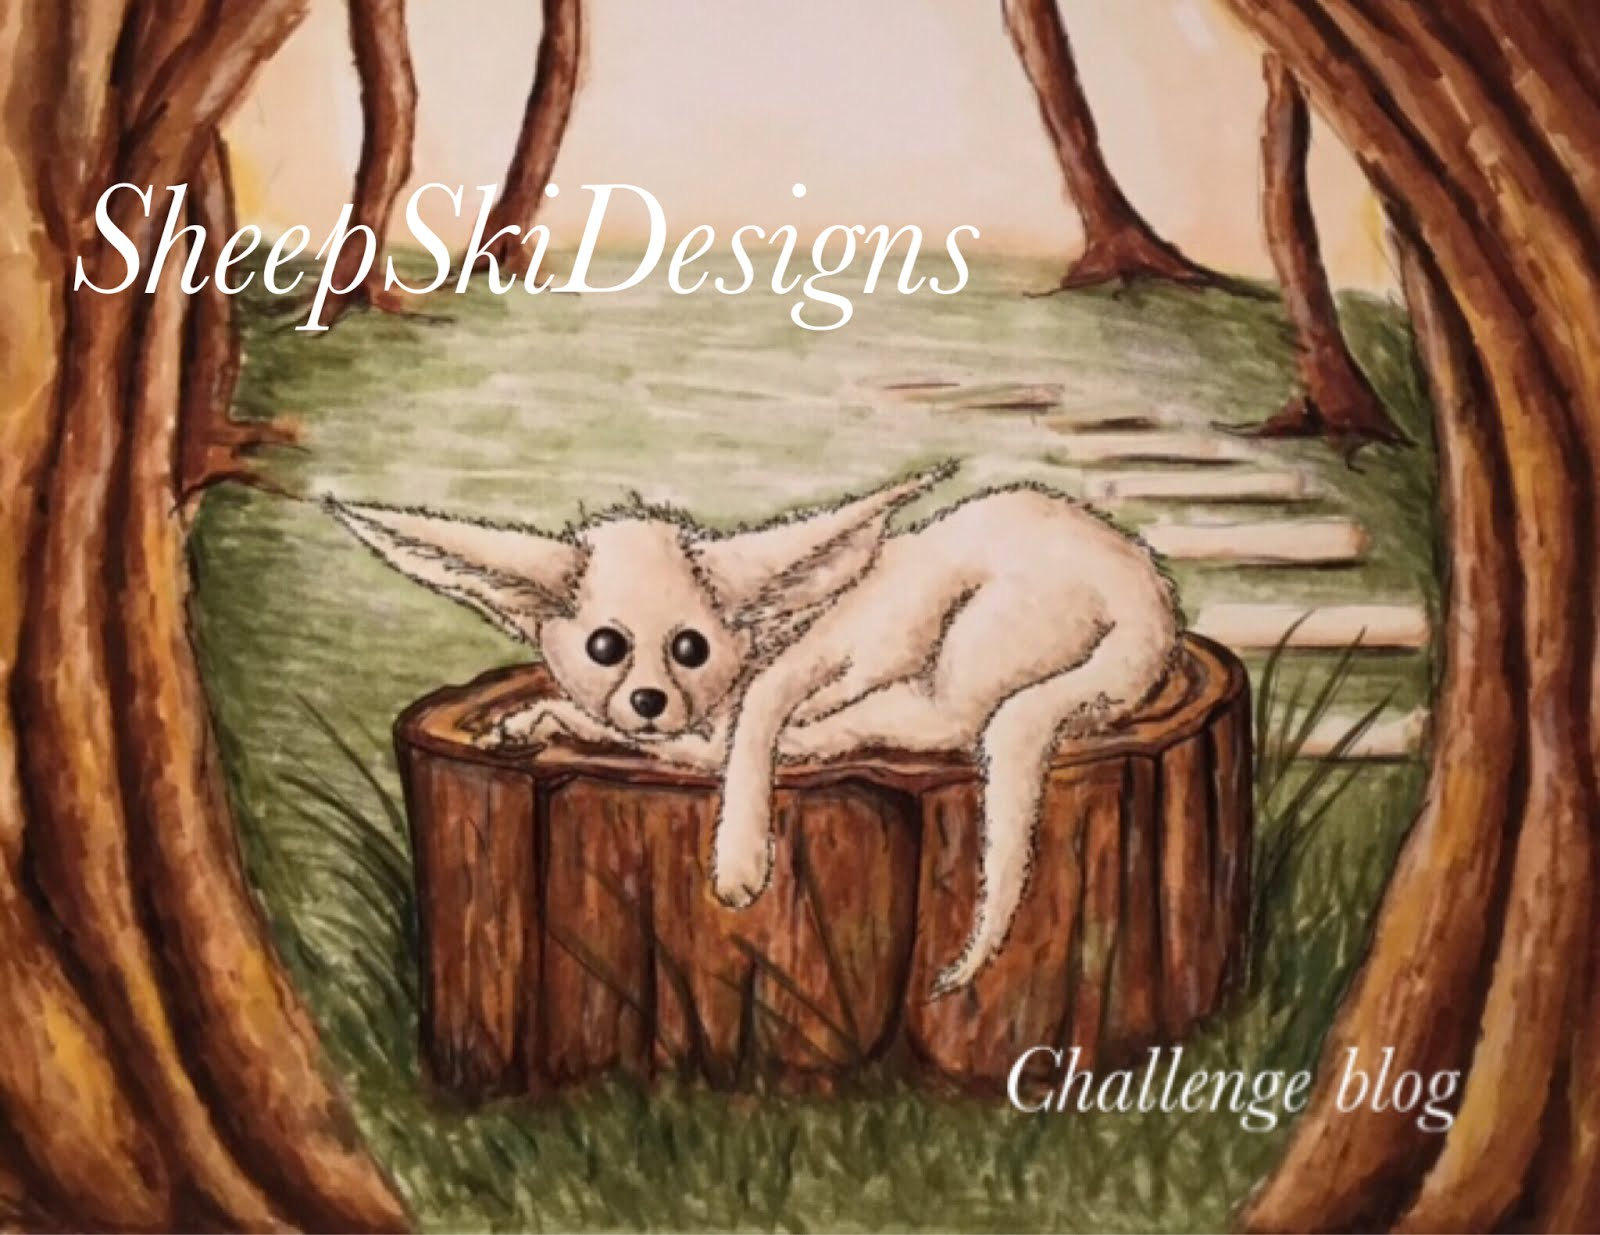 SheepSki Designs Challenges